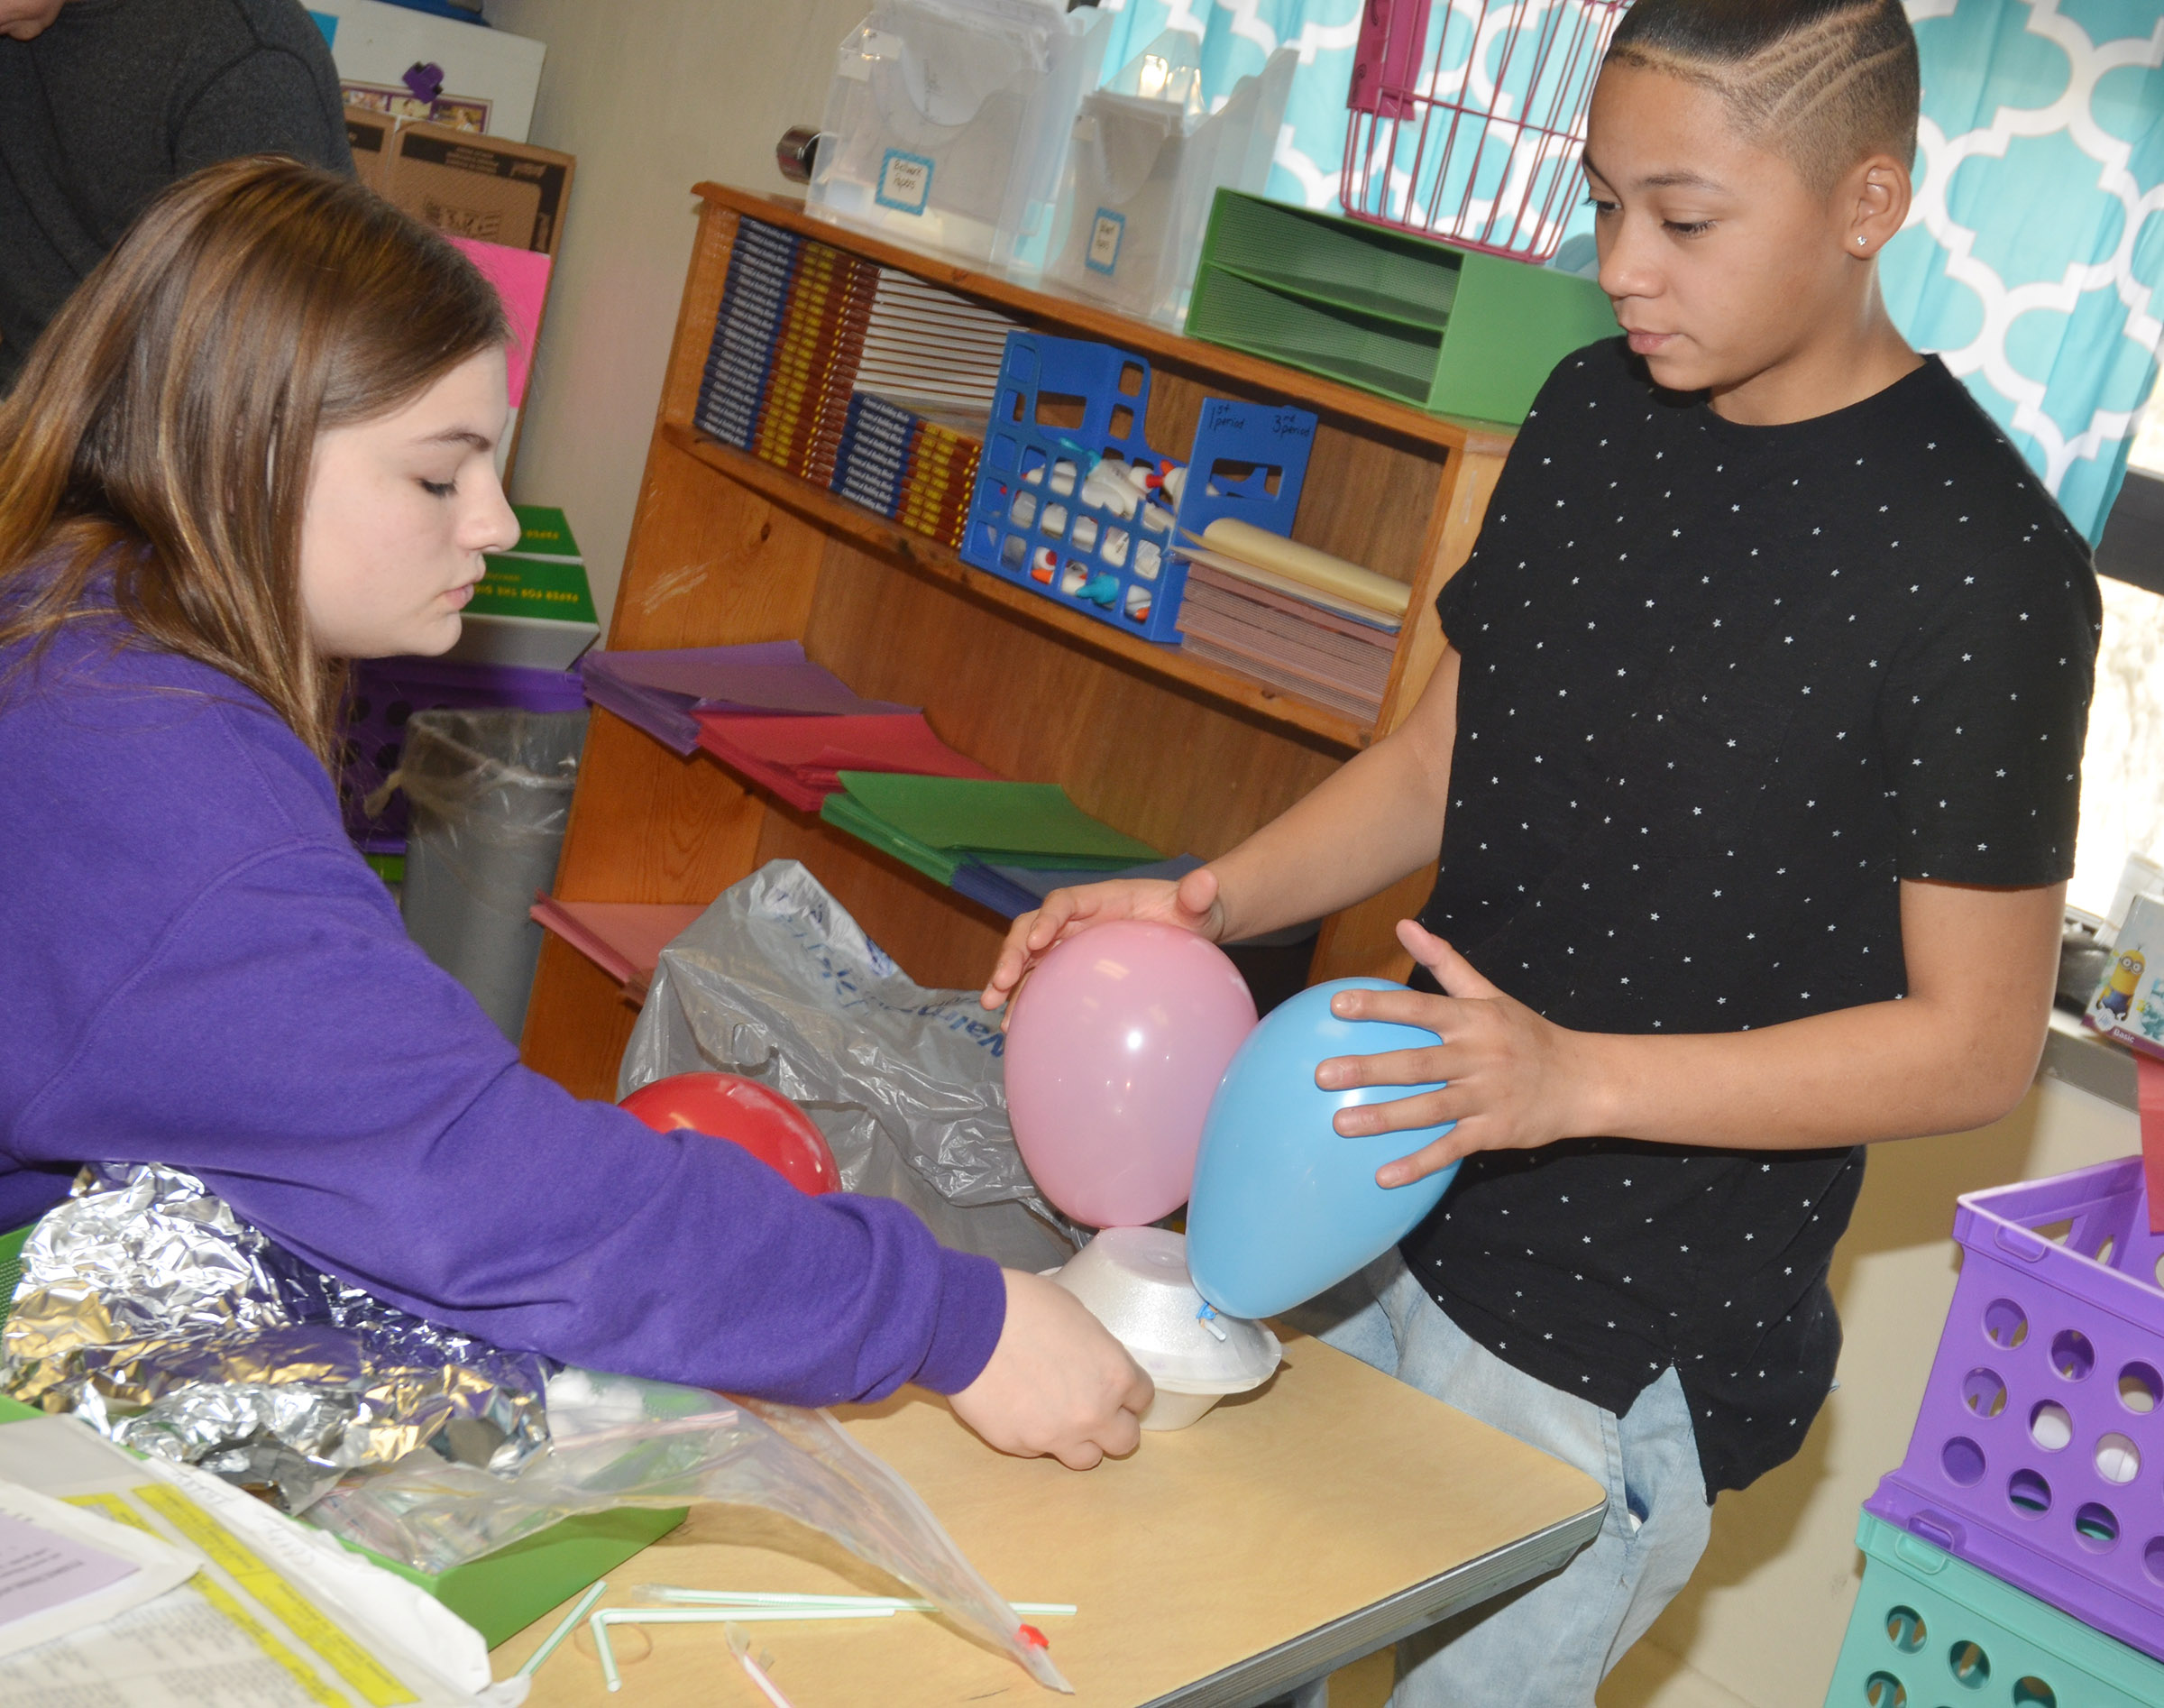 CMS eighth-graders Samantha Underwood, at left, and Taylor Whaley build their egg dropper container.